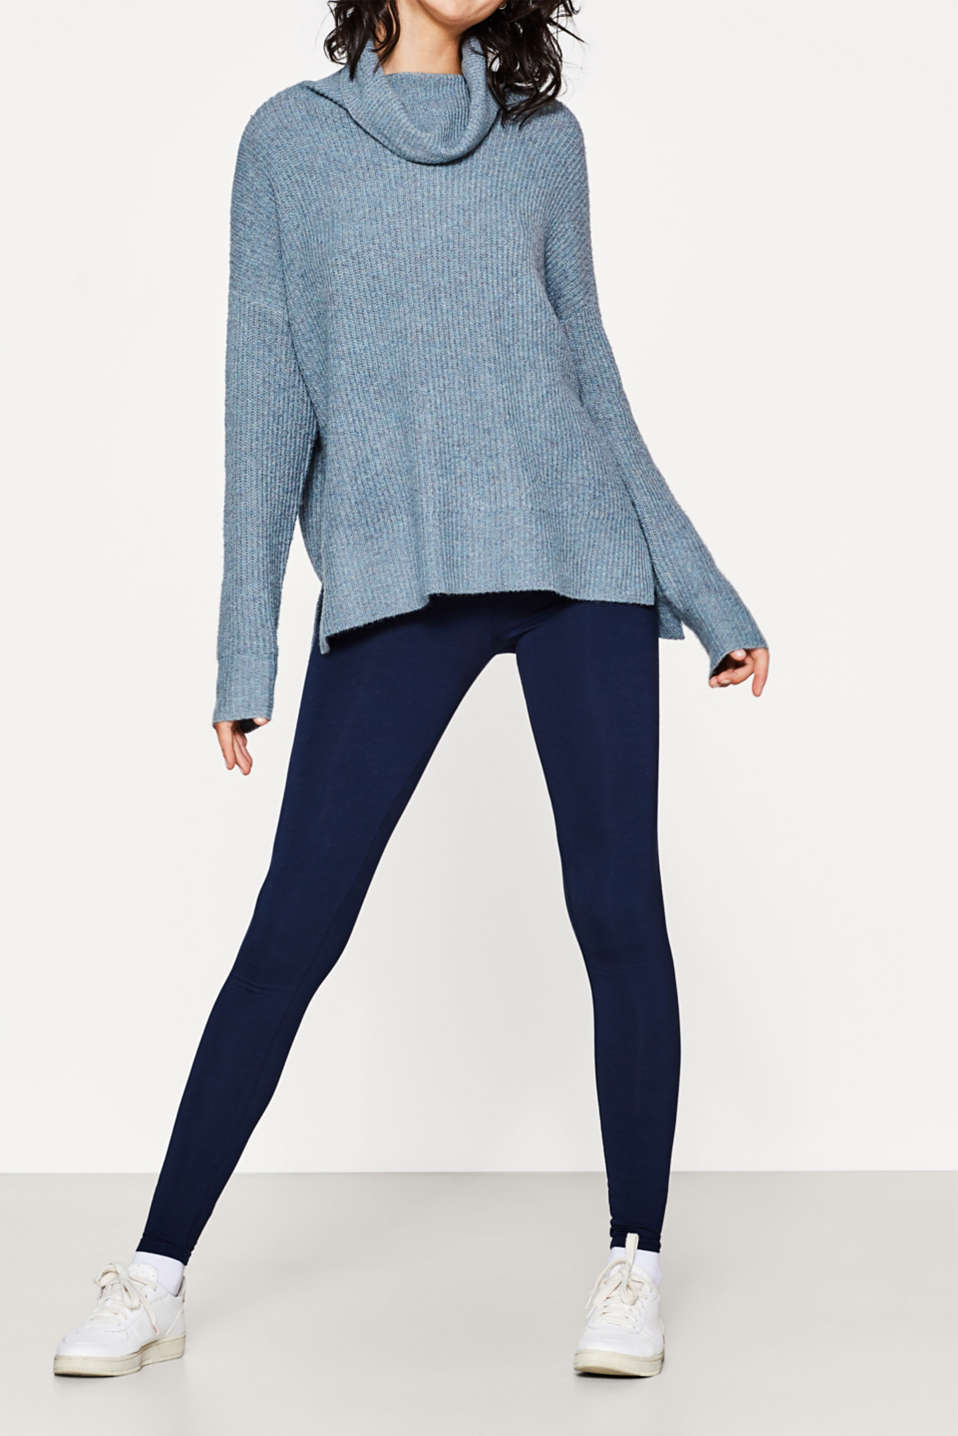 edc - Stretch legging in organic cotton